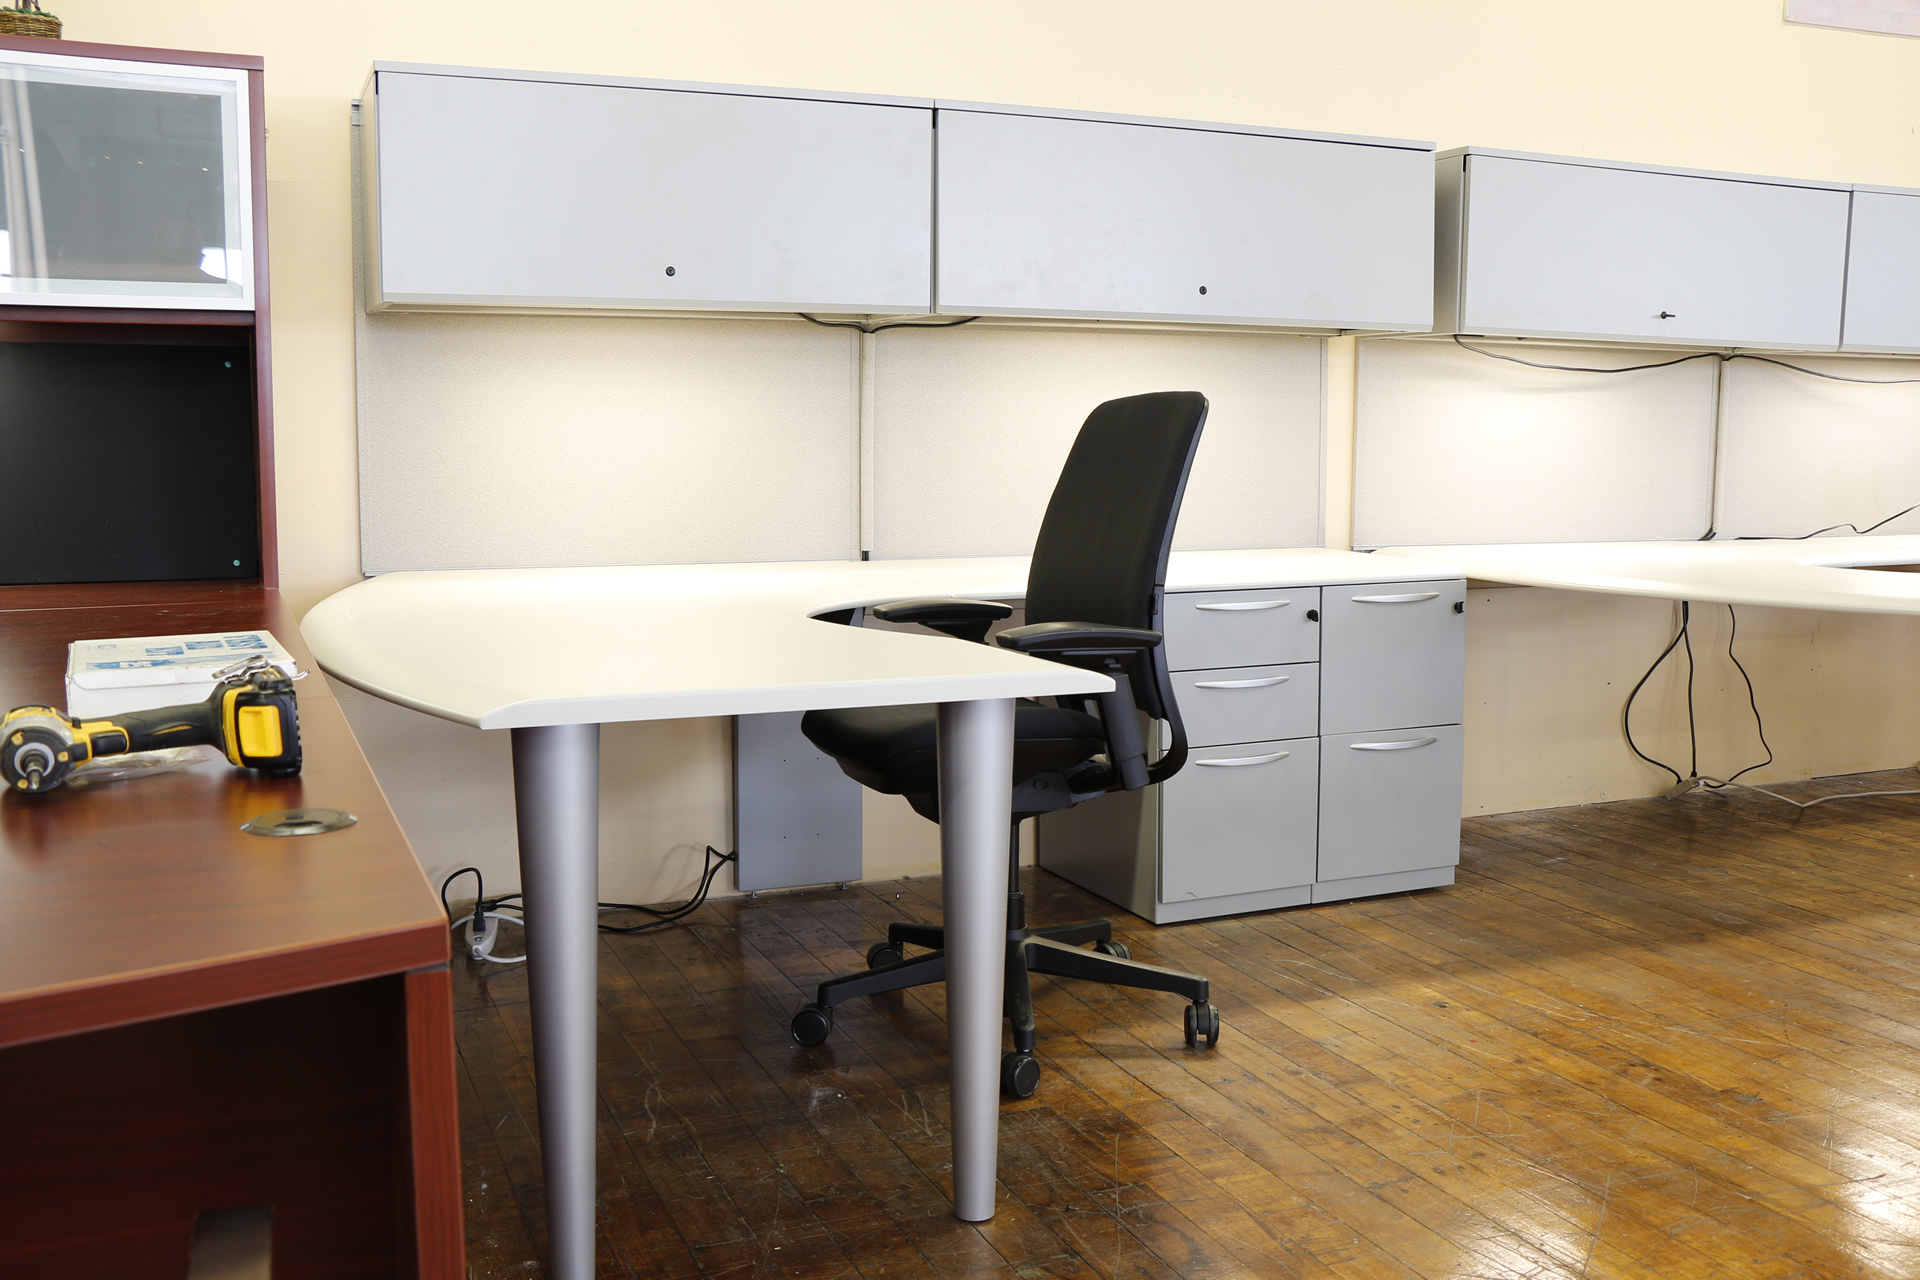 peartreeofficefurniture_peartreeofficefurniture_mg_4403.jpg